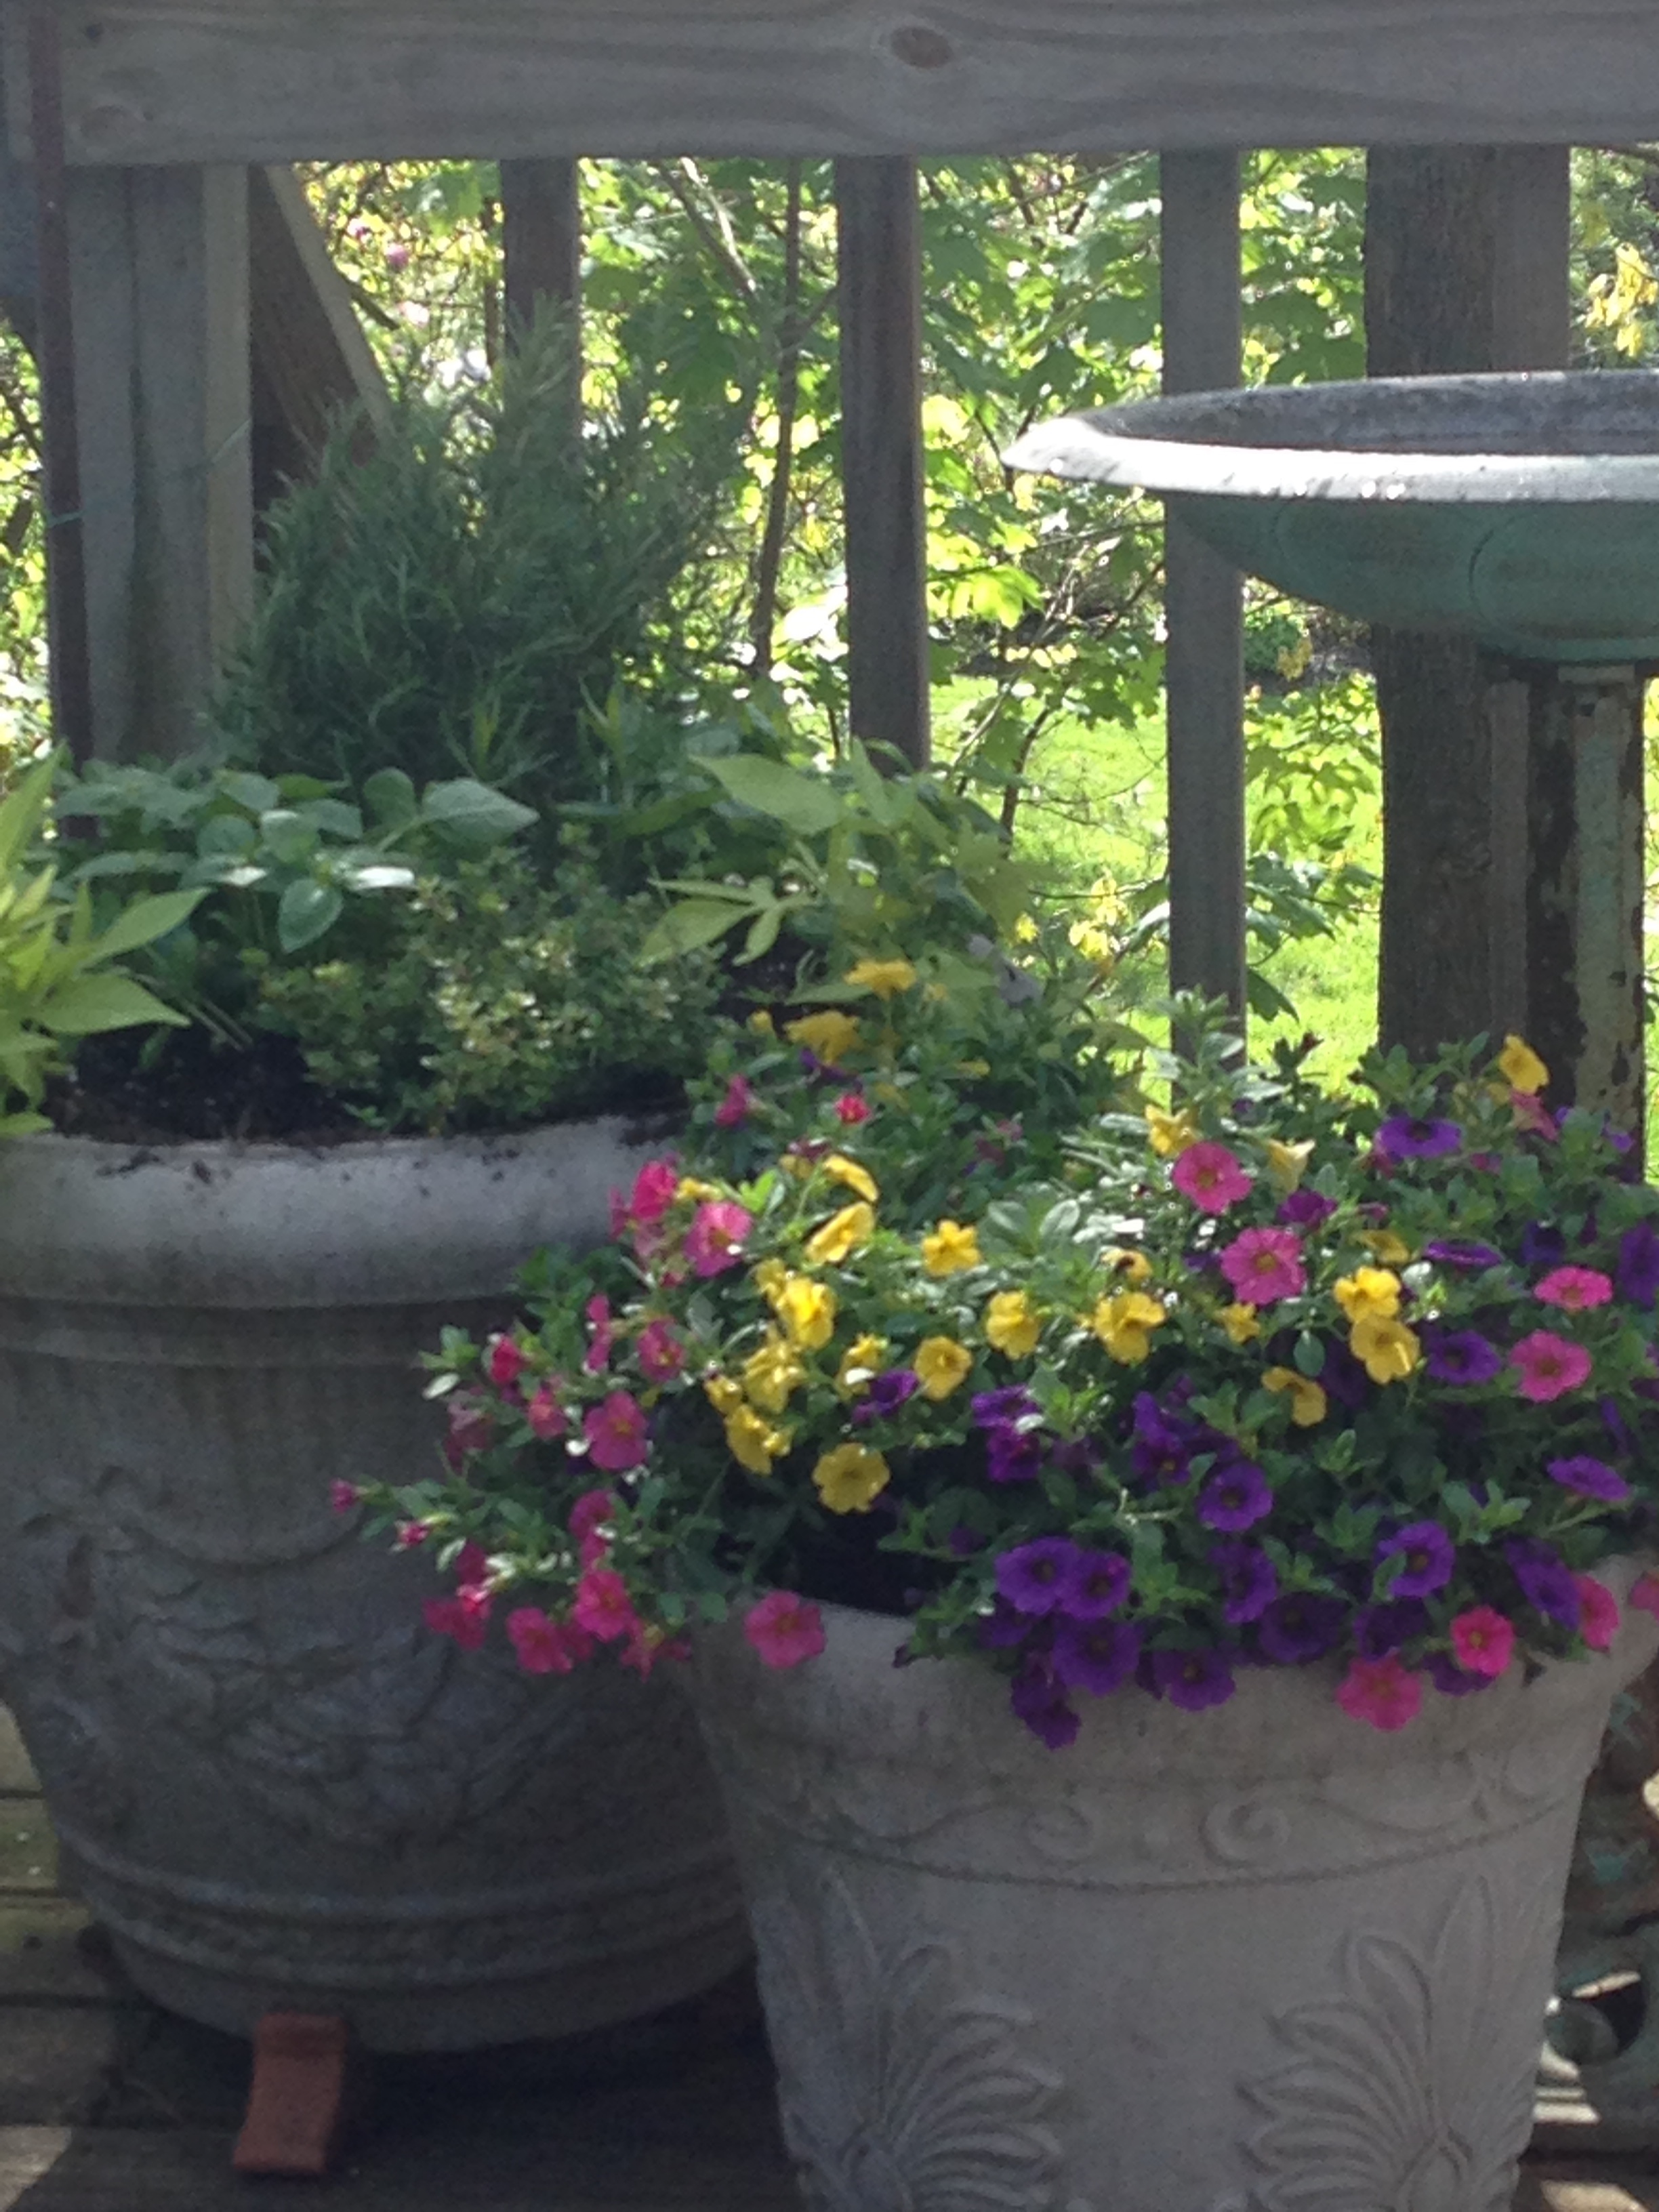 Pots of flowers and herbs surround a frequently visited birdbath on my back deck. The squirrels and chipmunks and a few birds use it for drinking, but the robins are the most fun to watch as they take rather vigorous, splashing baths nearly every summer afternoon!